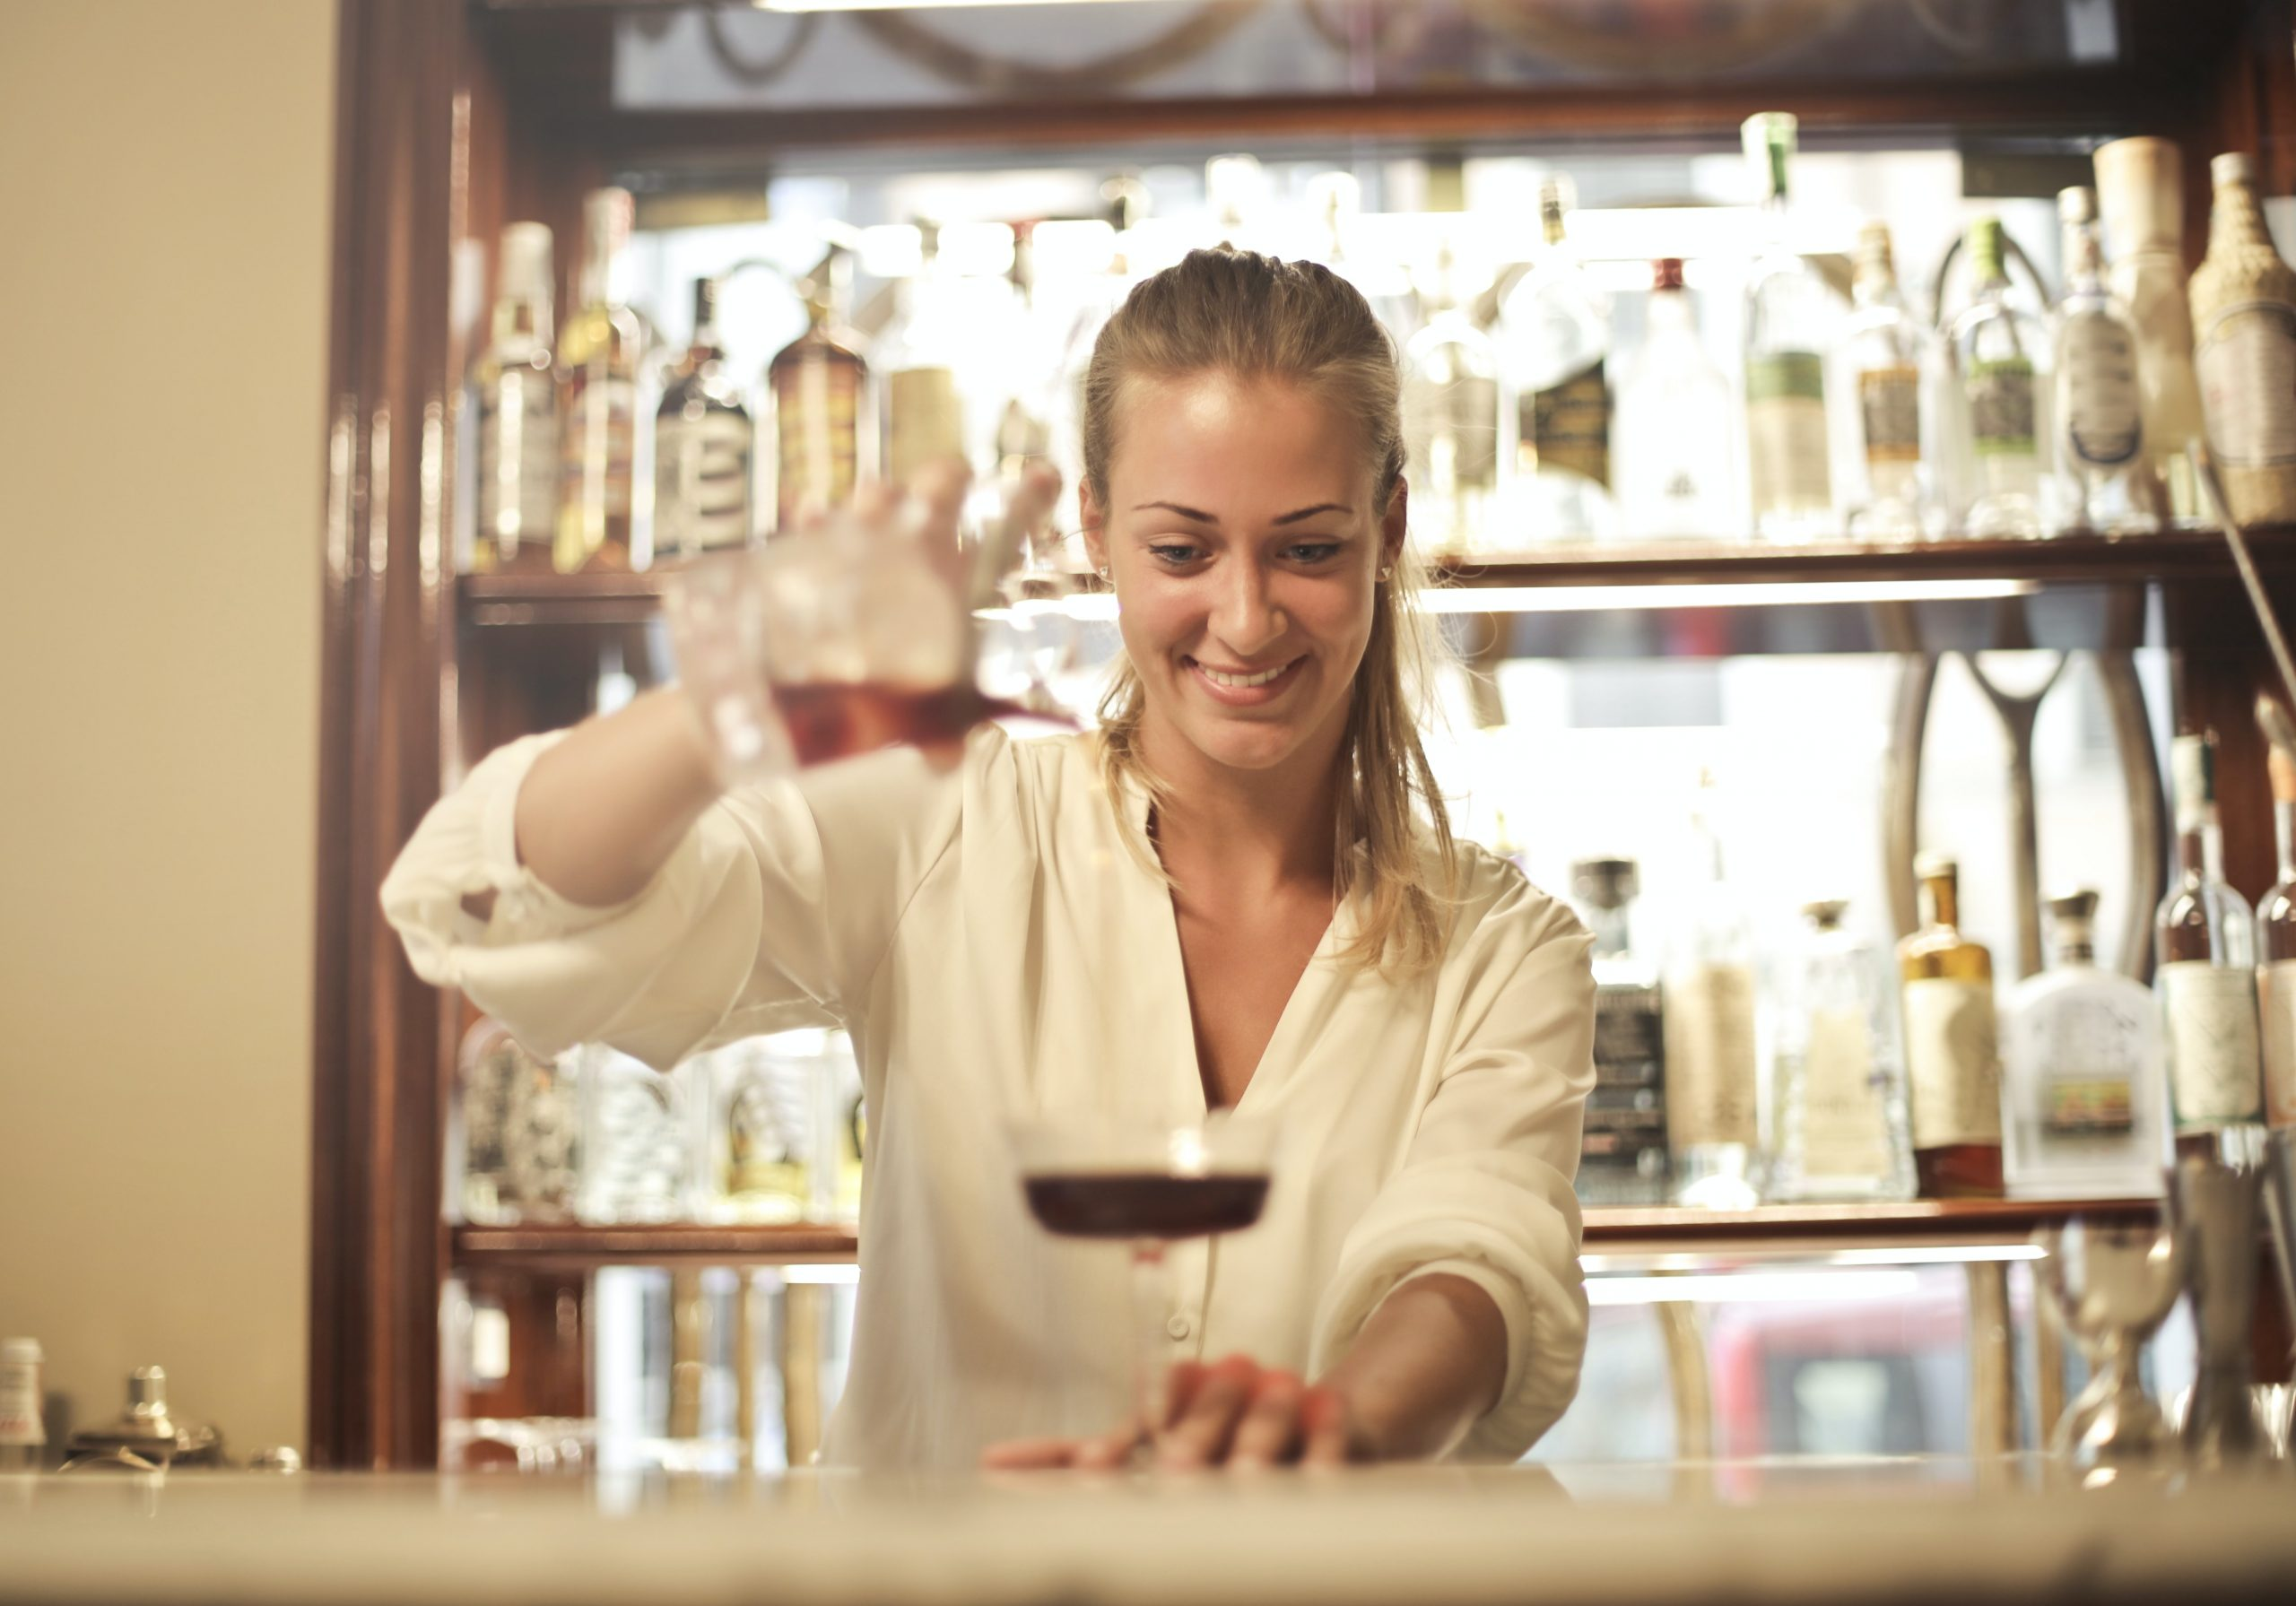 Female hospitality leaders like the one shown pouring a cocktail are paving the way for others in the hospitality industry.